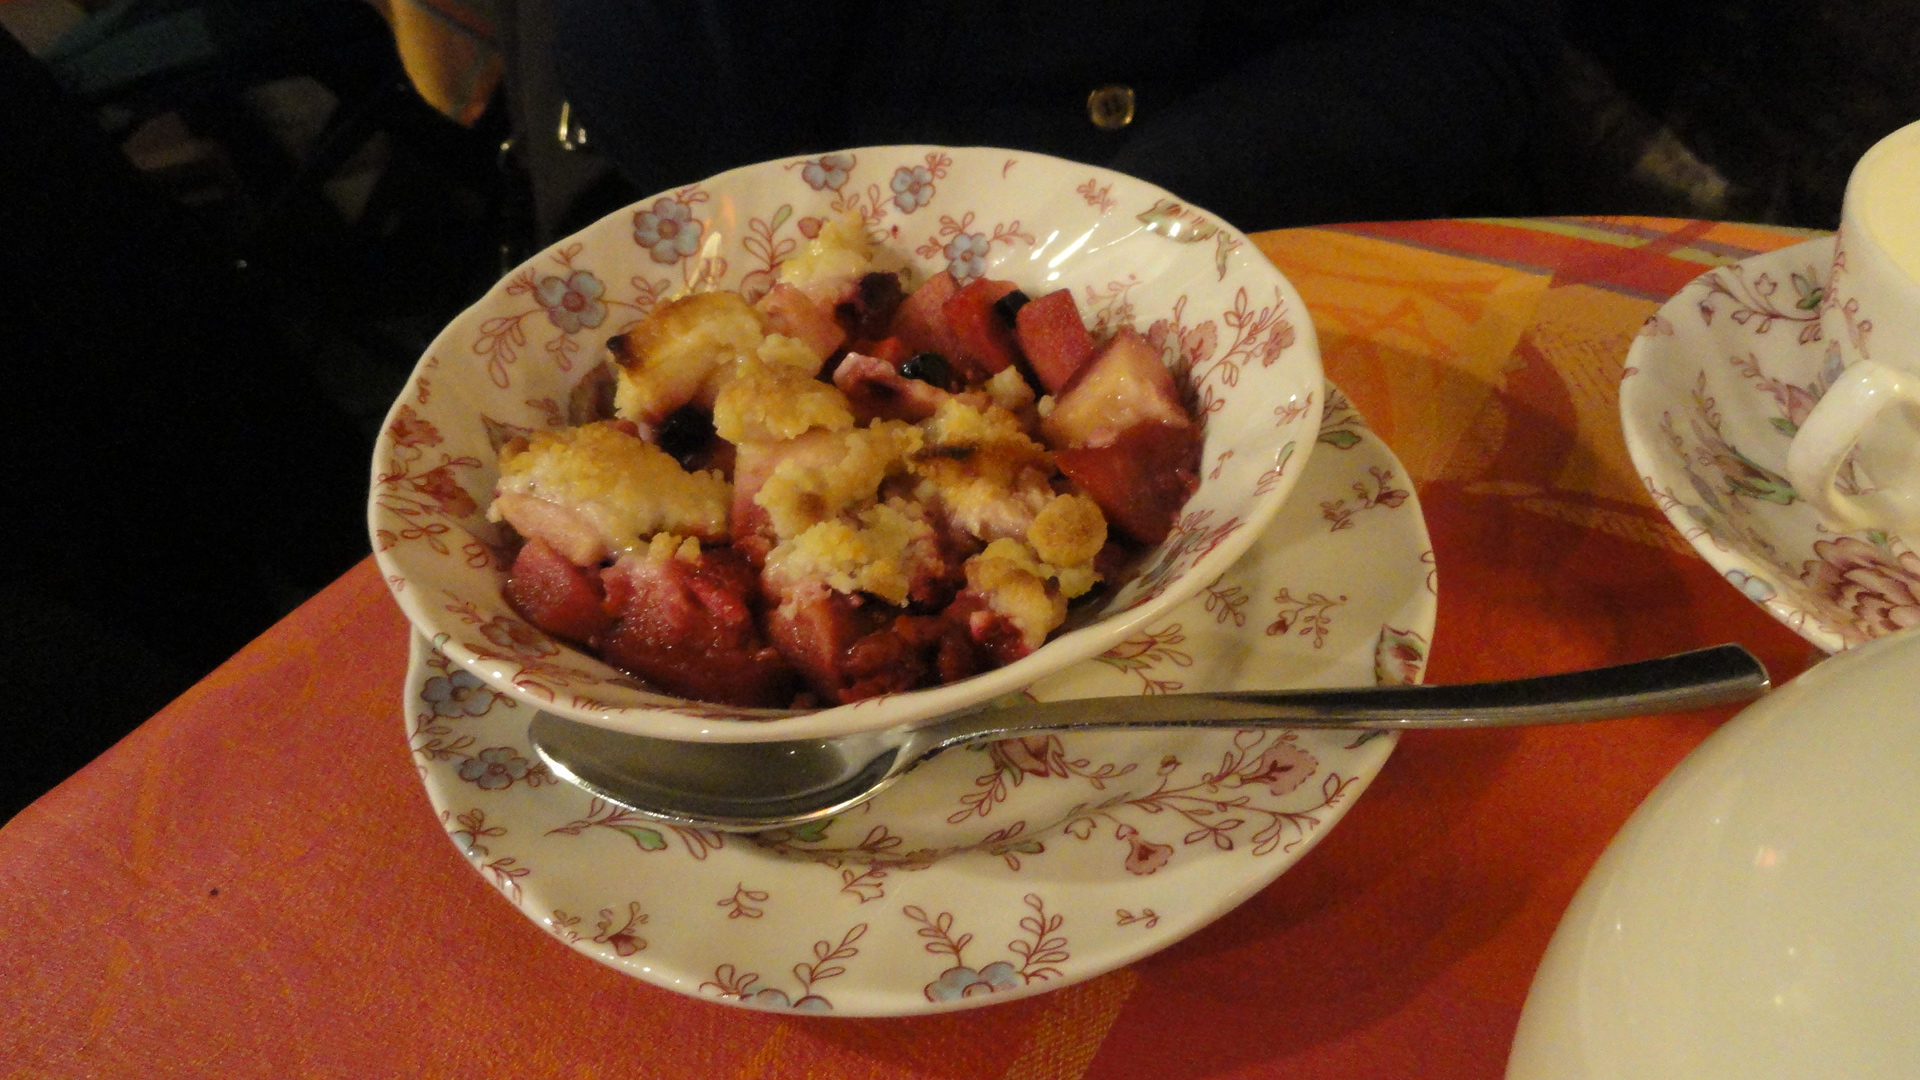 Brunch au Queen Ann - Crumble aux fruits rouges